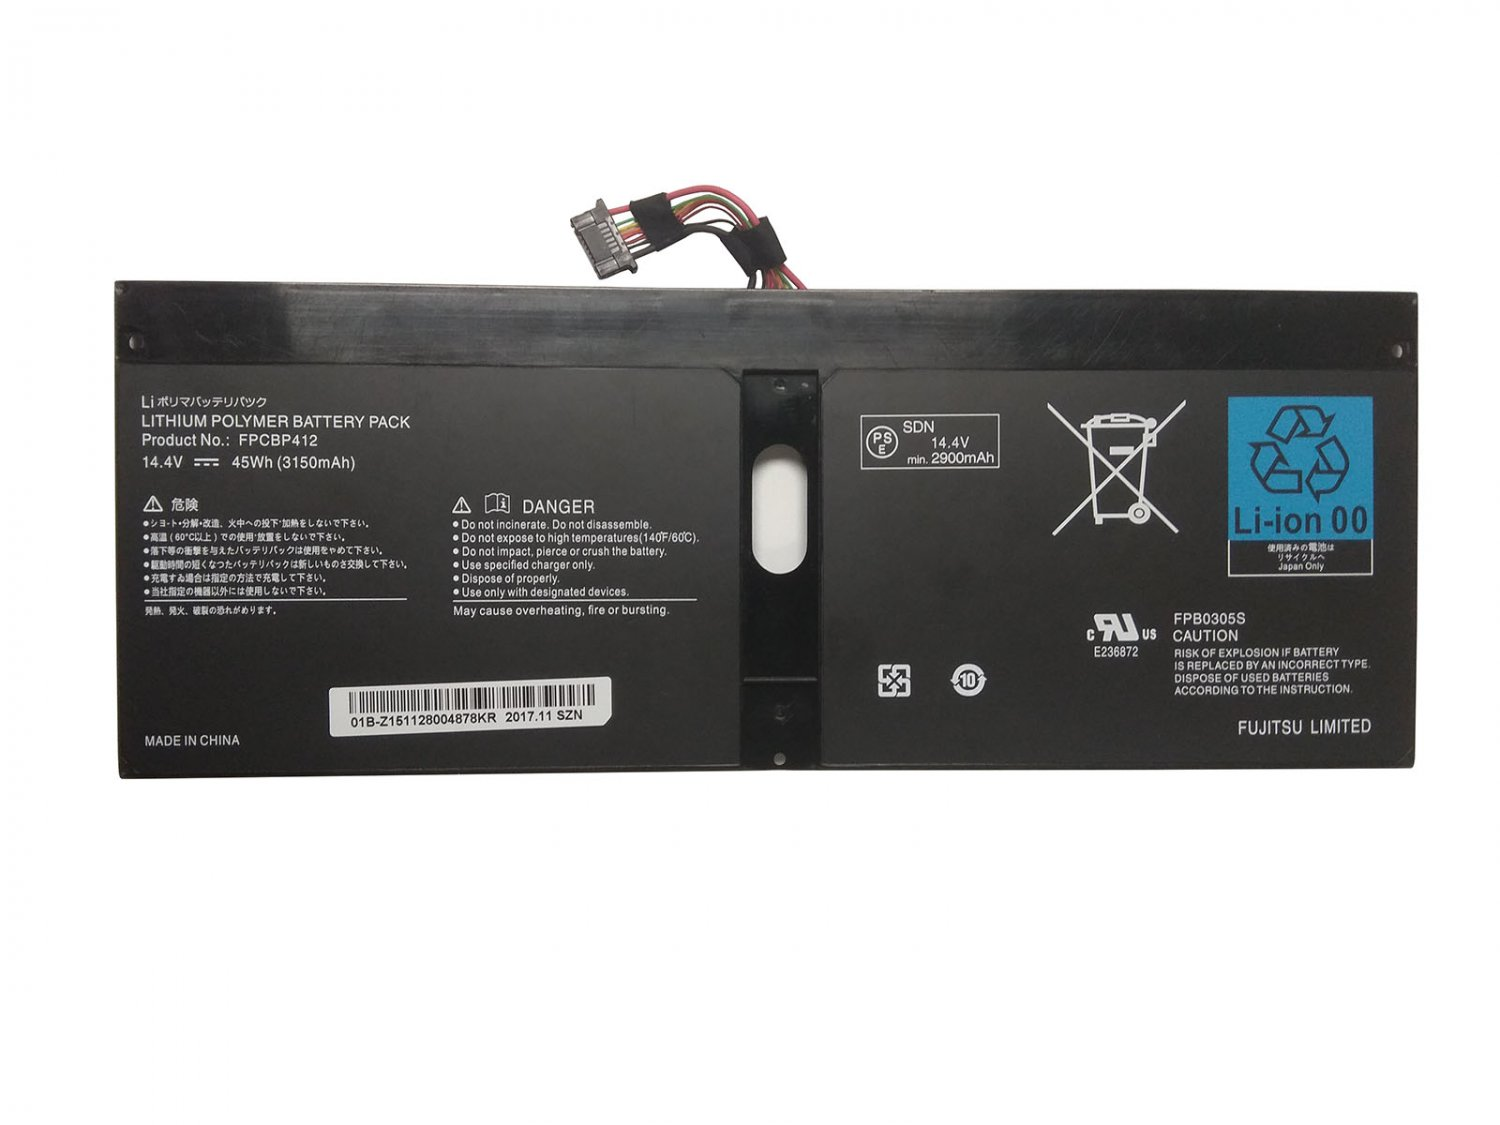 FPCBP412 Battery FPB0305S CP636960-01 For Fujitsu Lifebook U904